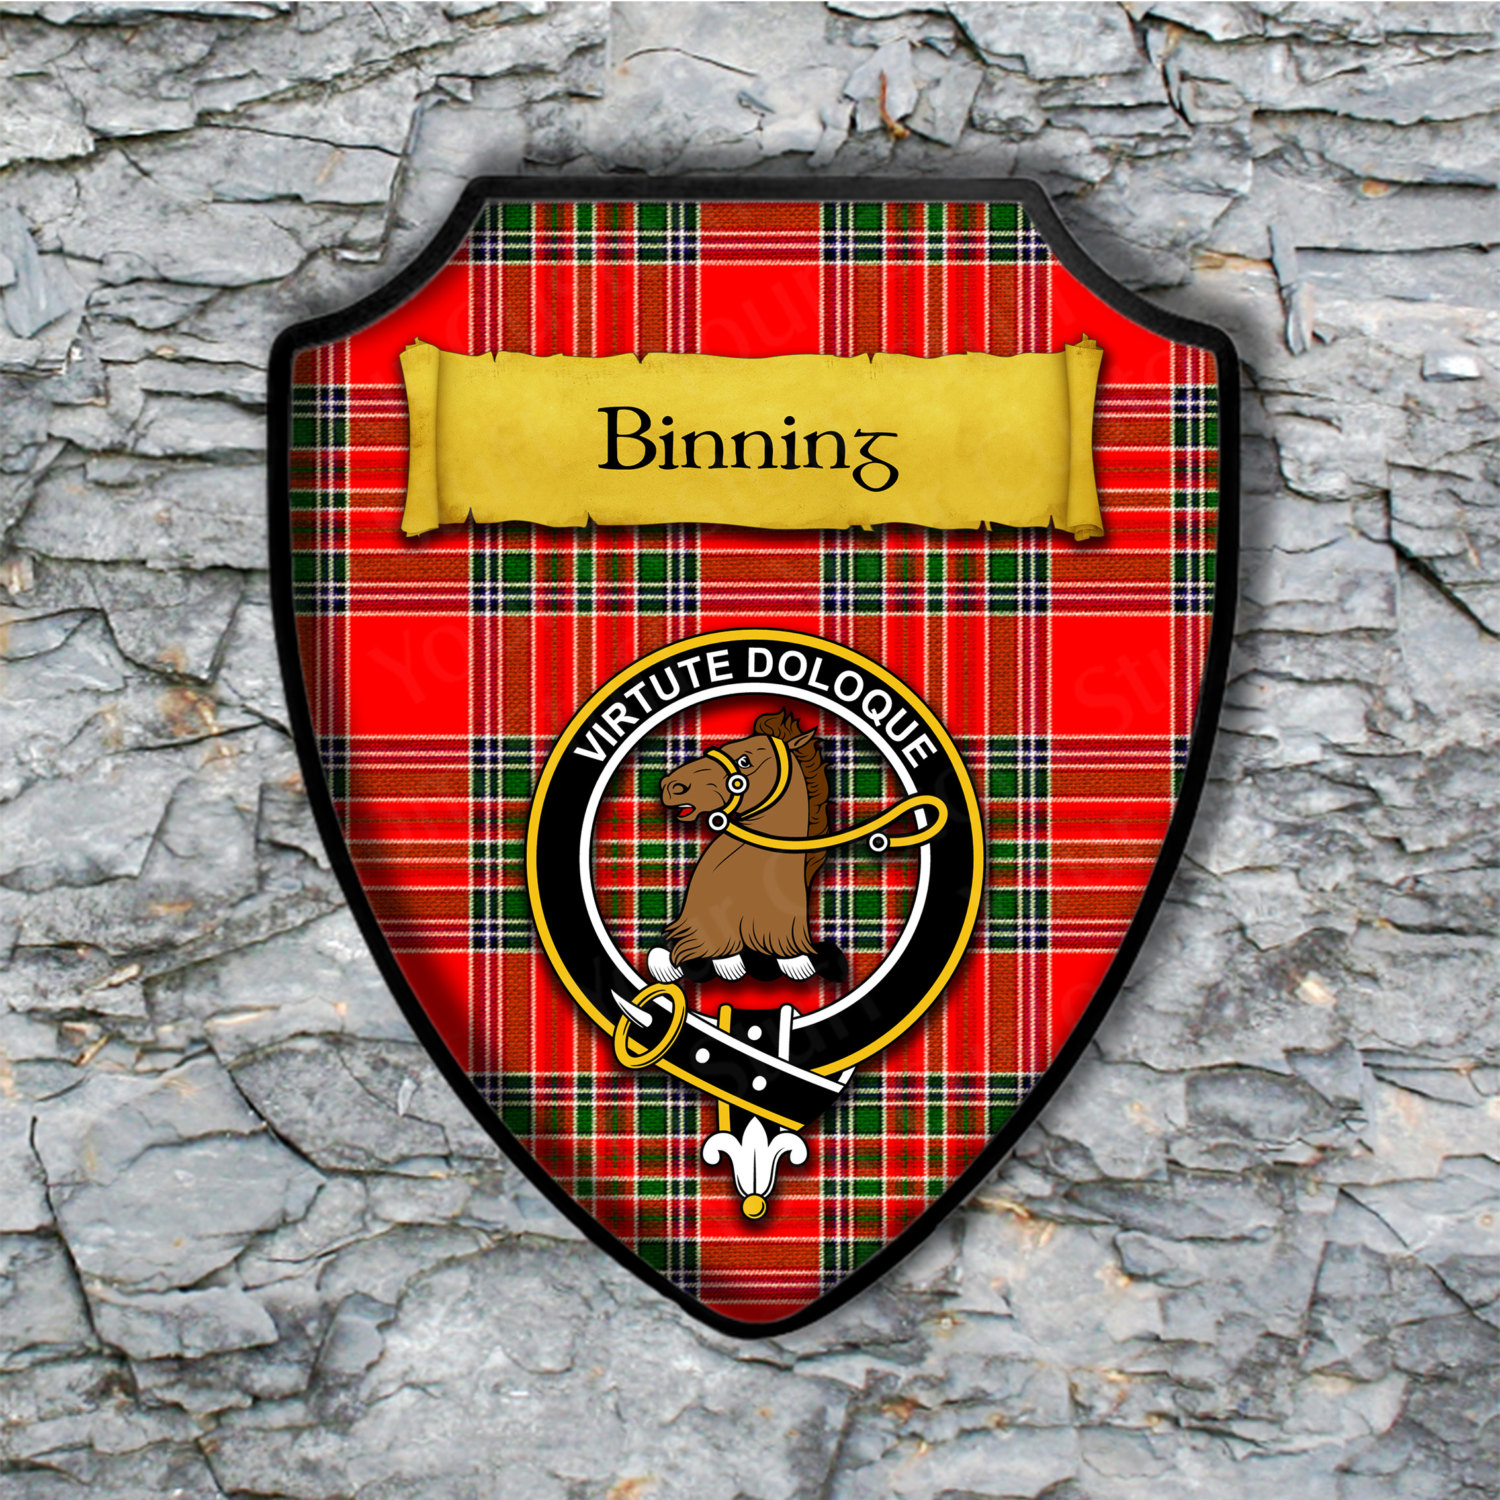 Binning Shield Plaque with Scottish Clan Coat of Arms Badge on Clan Plaid Tartan Background Wall Art